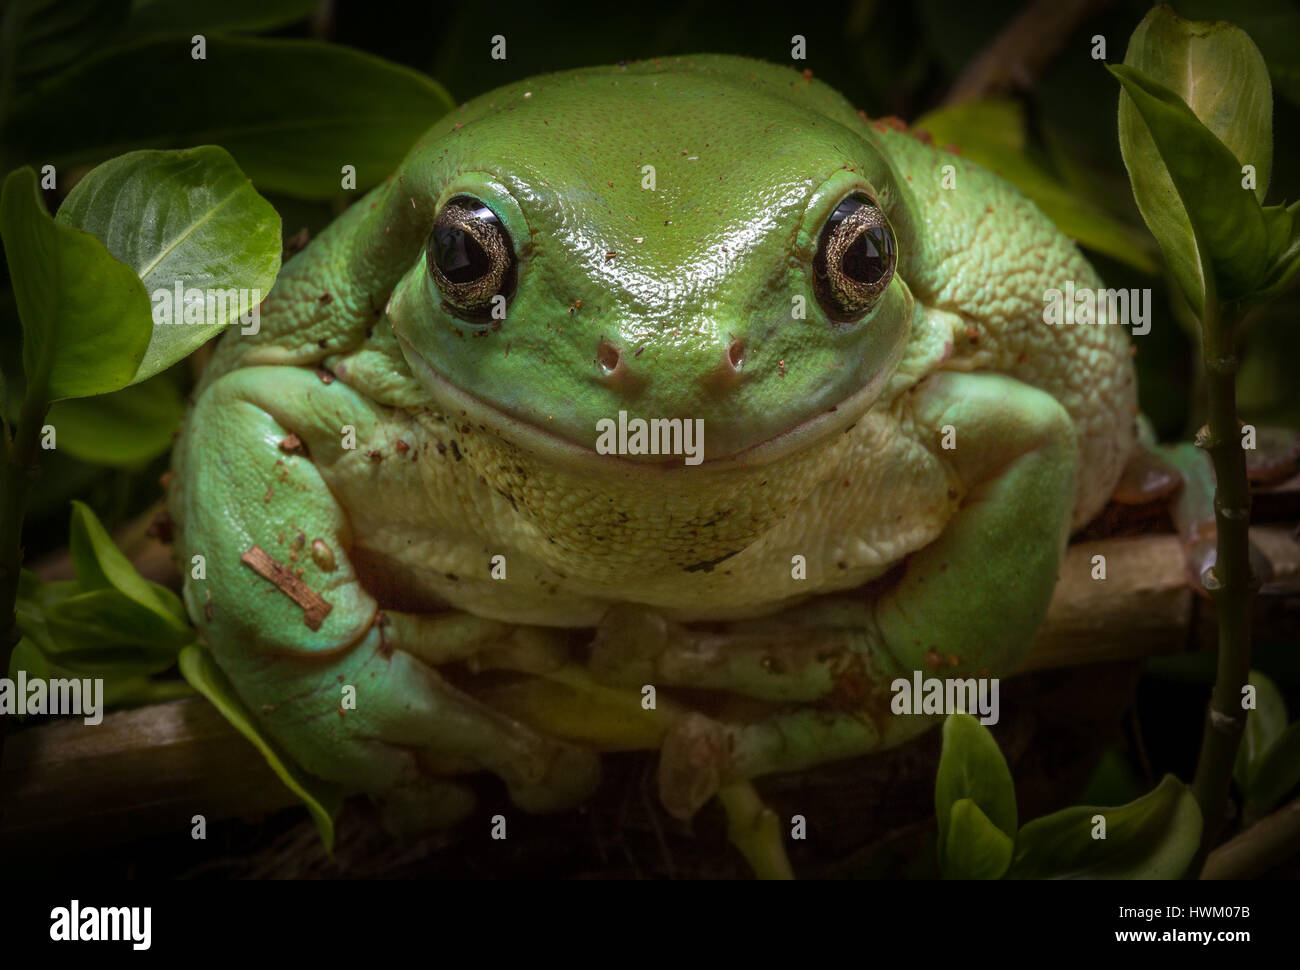 Green Tree Frog (Litoria caerulea) - Stock Image